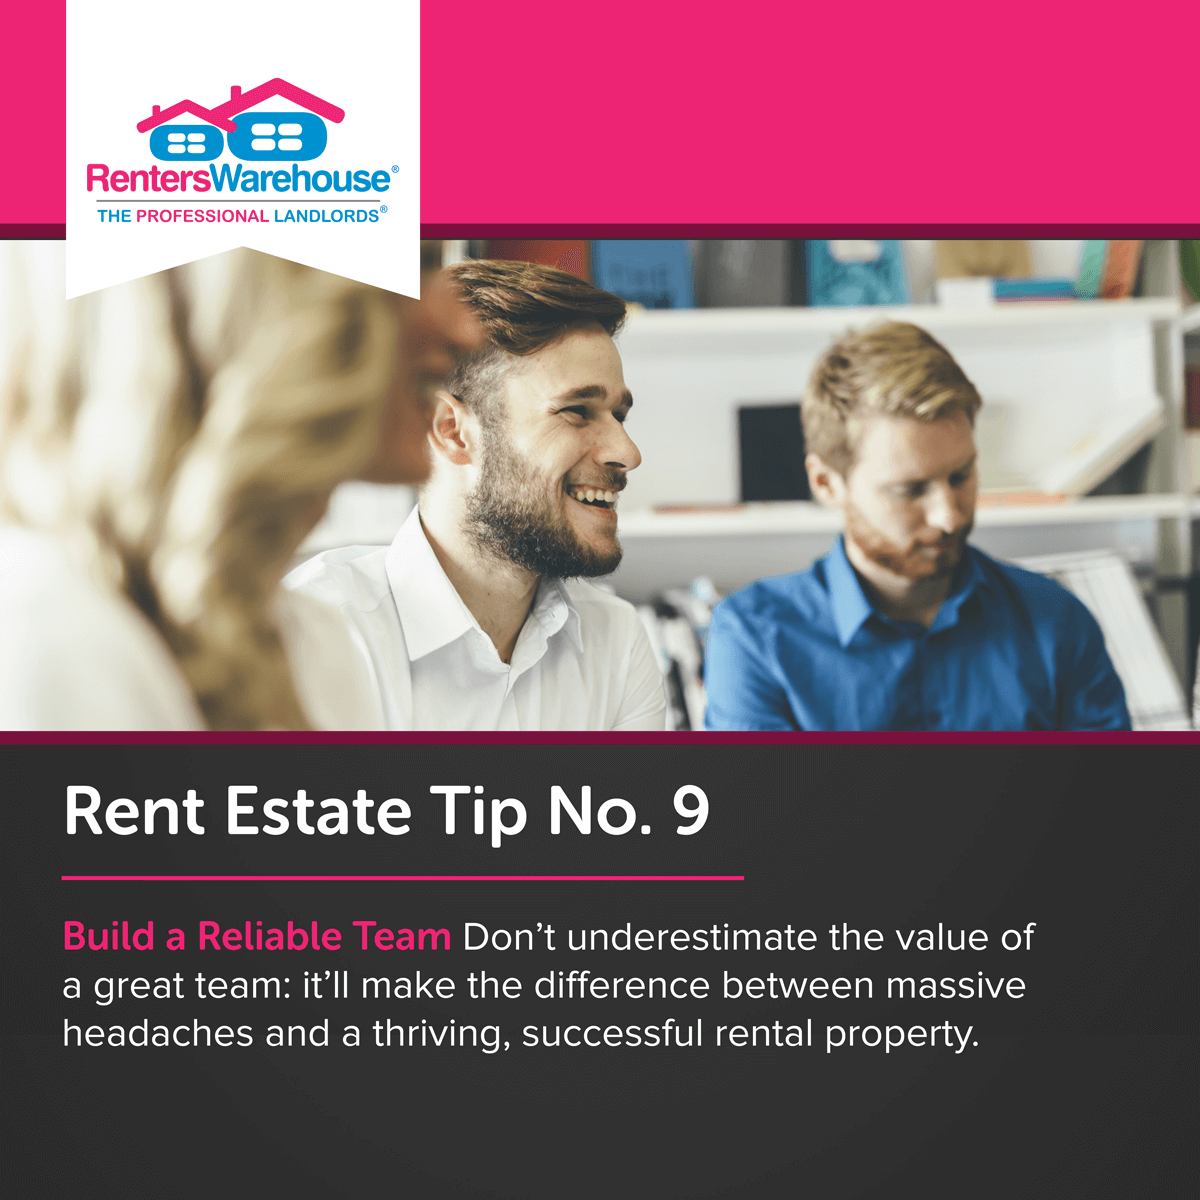 Image related to Rent Estate™ Tip No. 9 - Build a Reliable Team